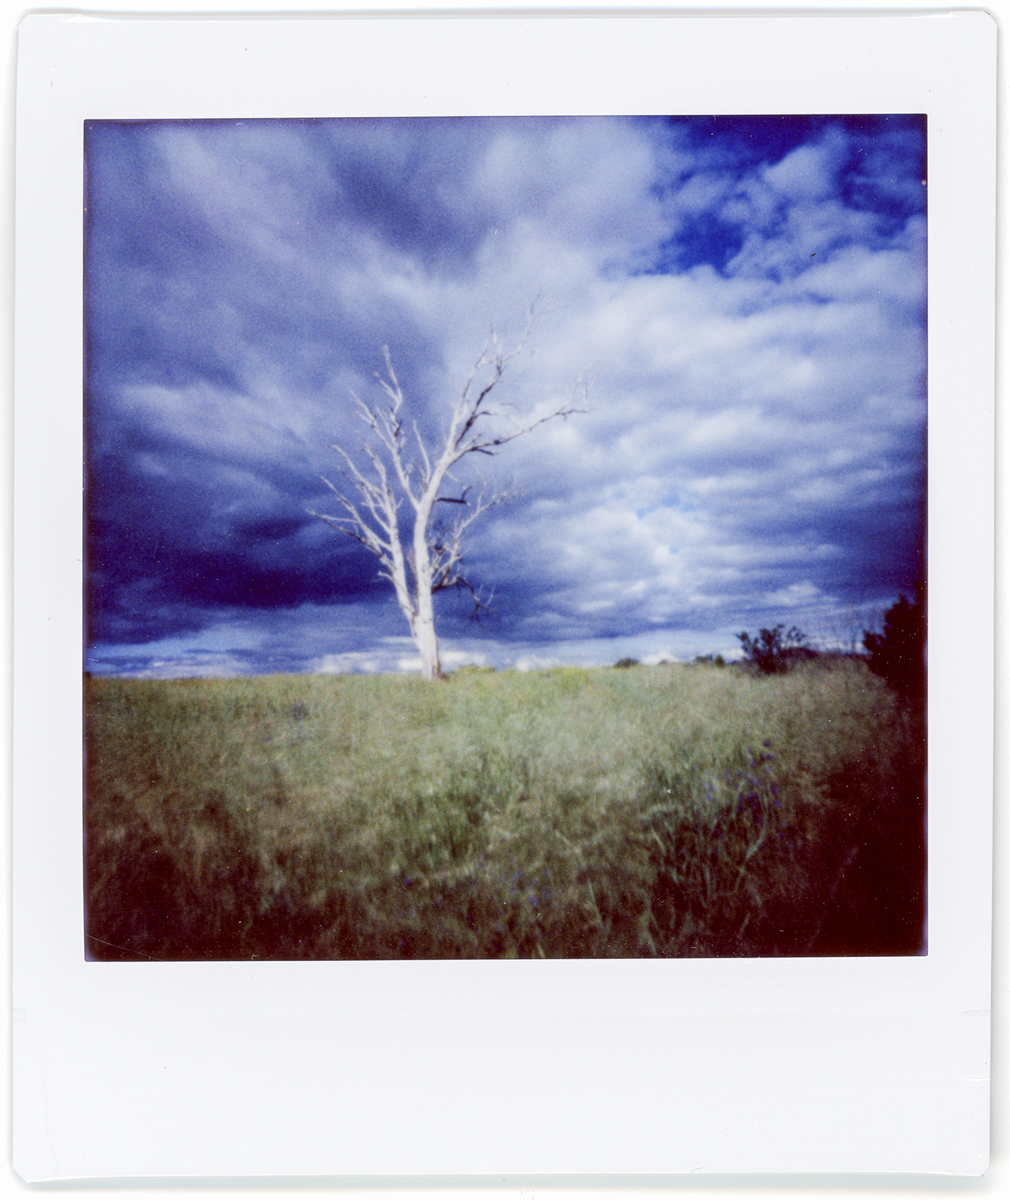 Tree Field - Lomography Diana Instant Square and Fujifilm Instant Square film